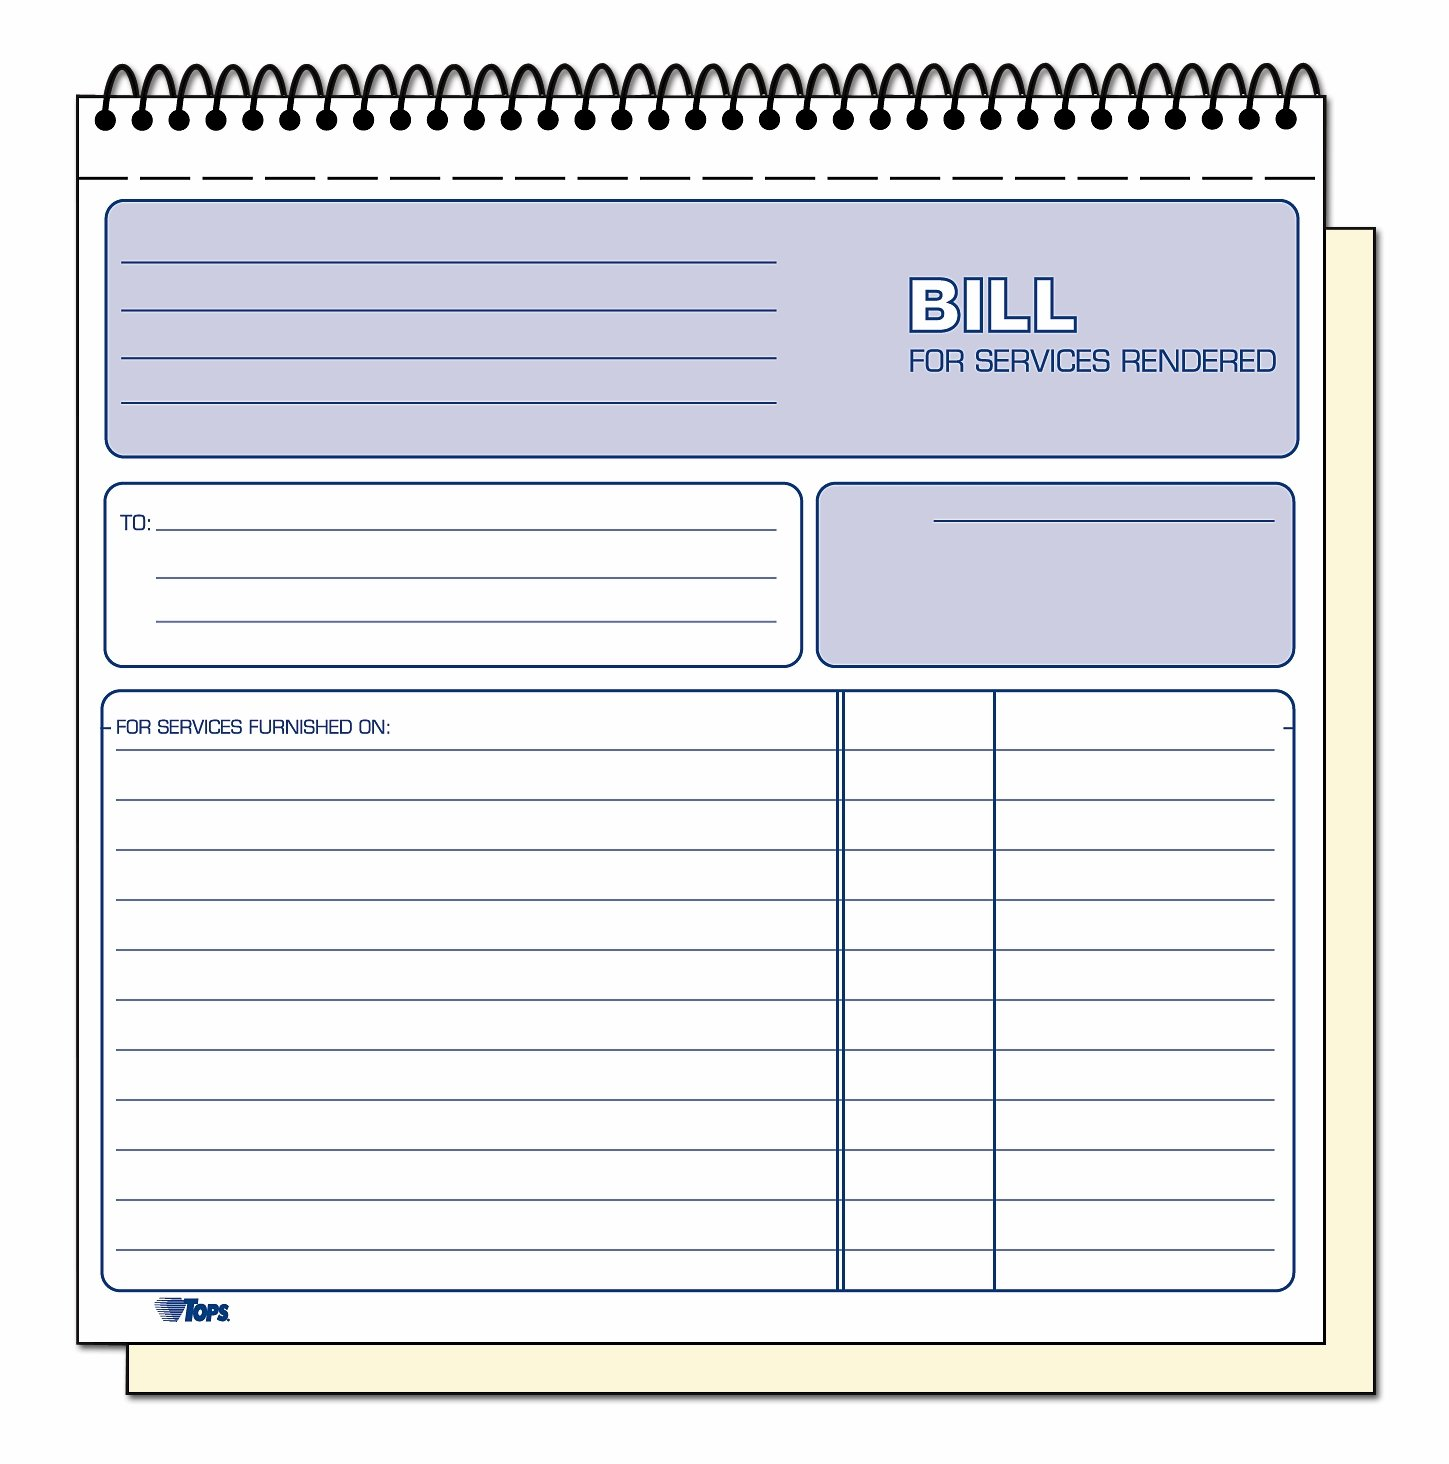 com tops part carbonless bill for services rendered book com tops 2 part carbonless bill for services rendered book 8 5 x 8 25 inches 50 sheets white 4133 office products